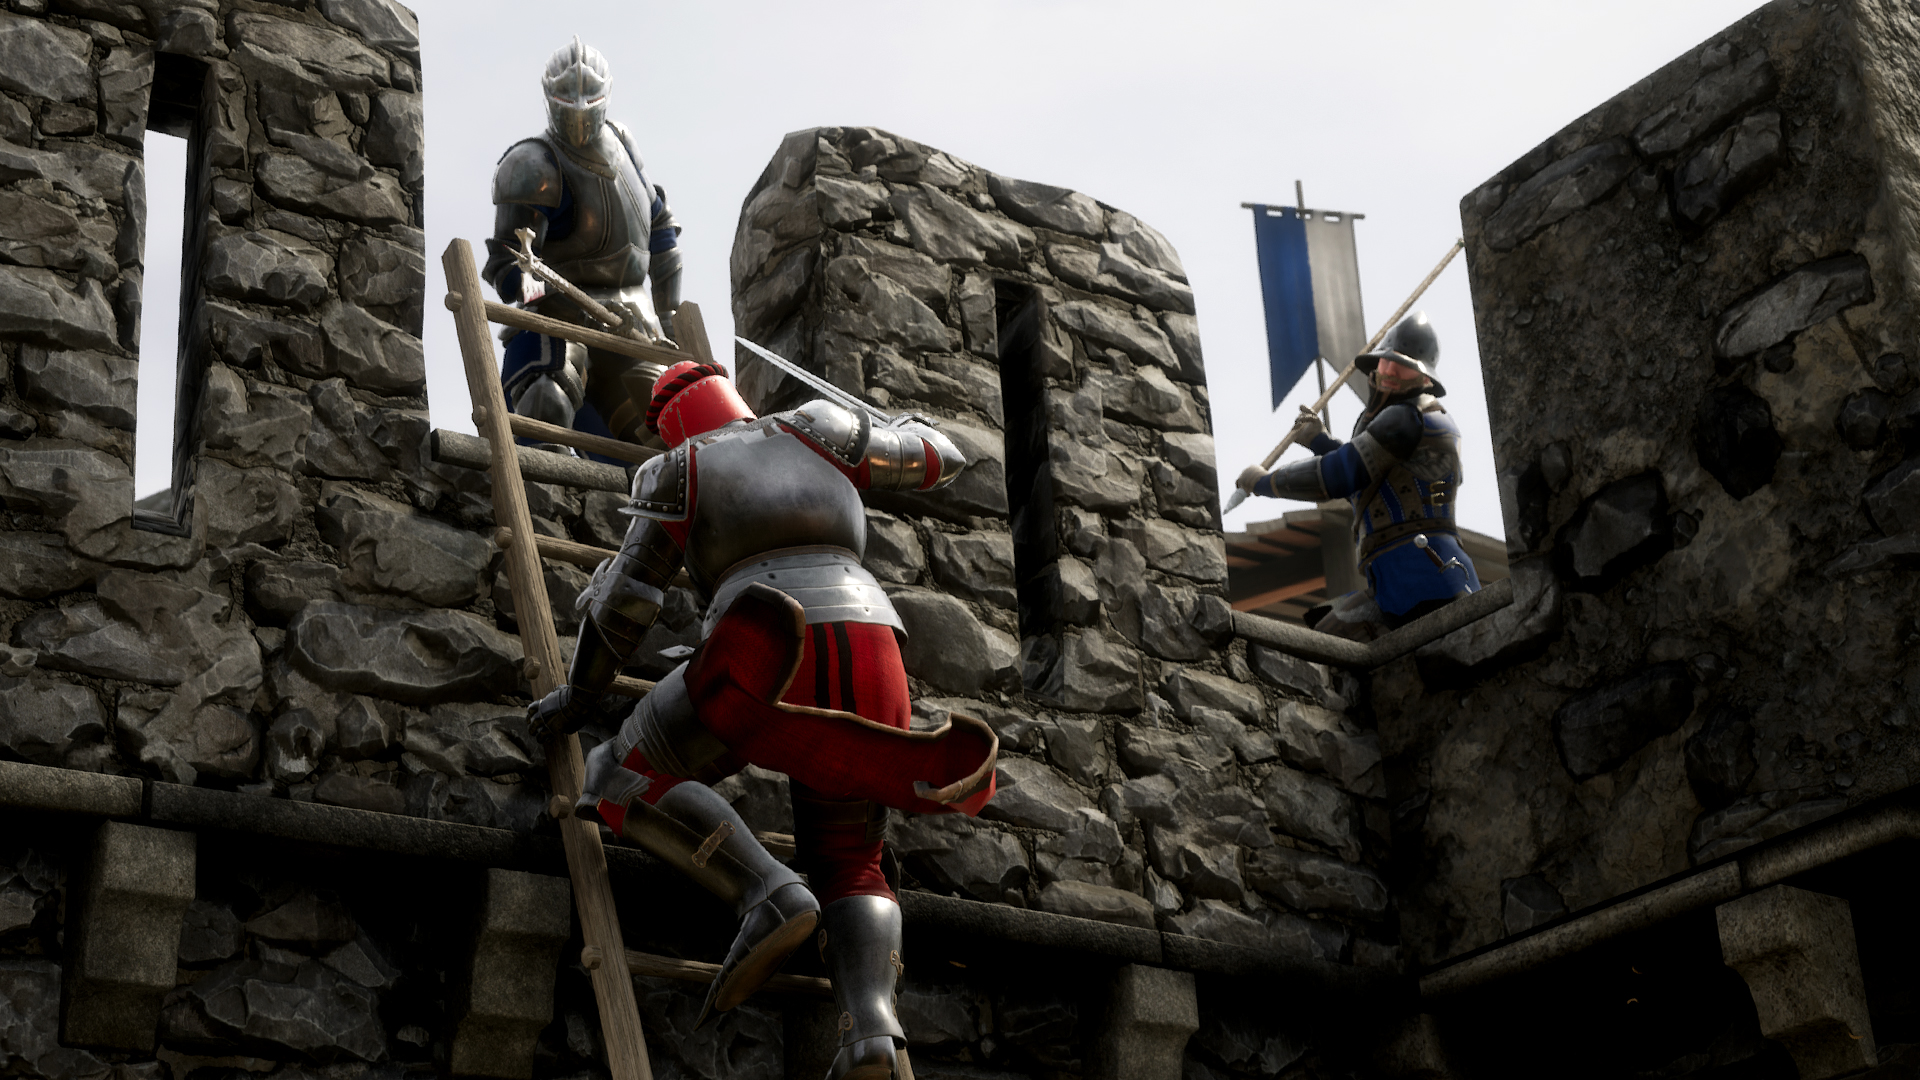 Mordhau now has an experimental ranked mode for duels